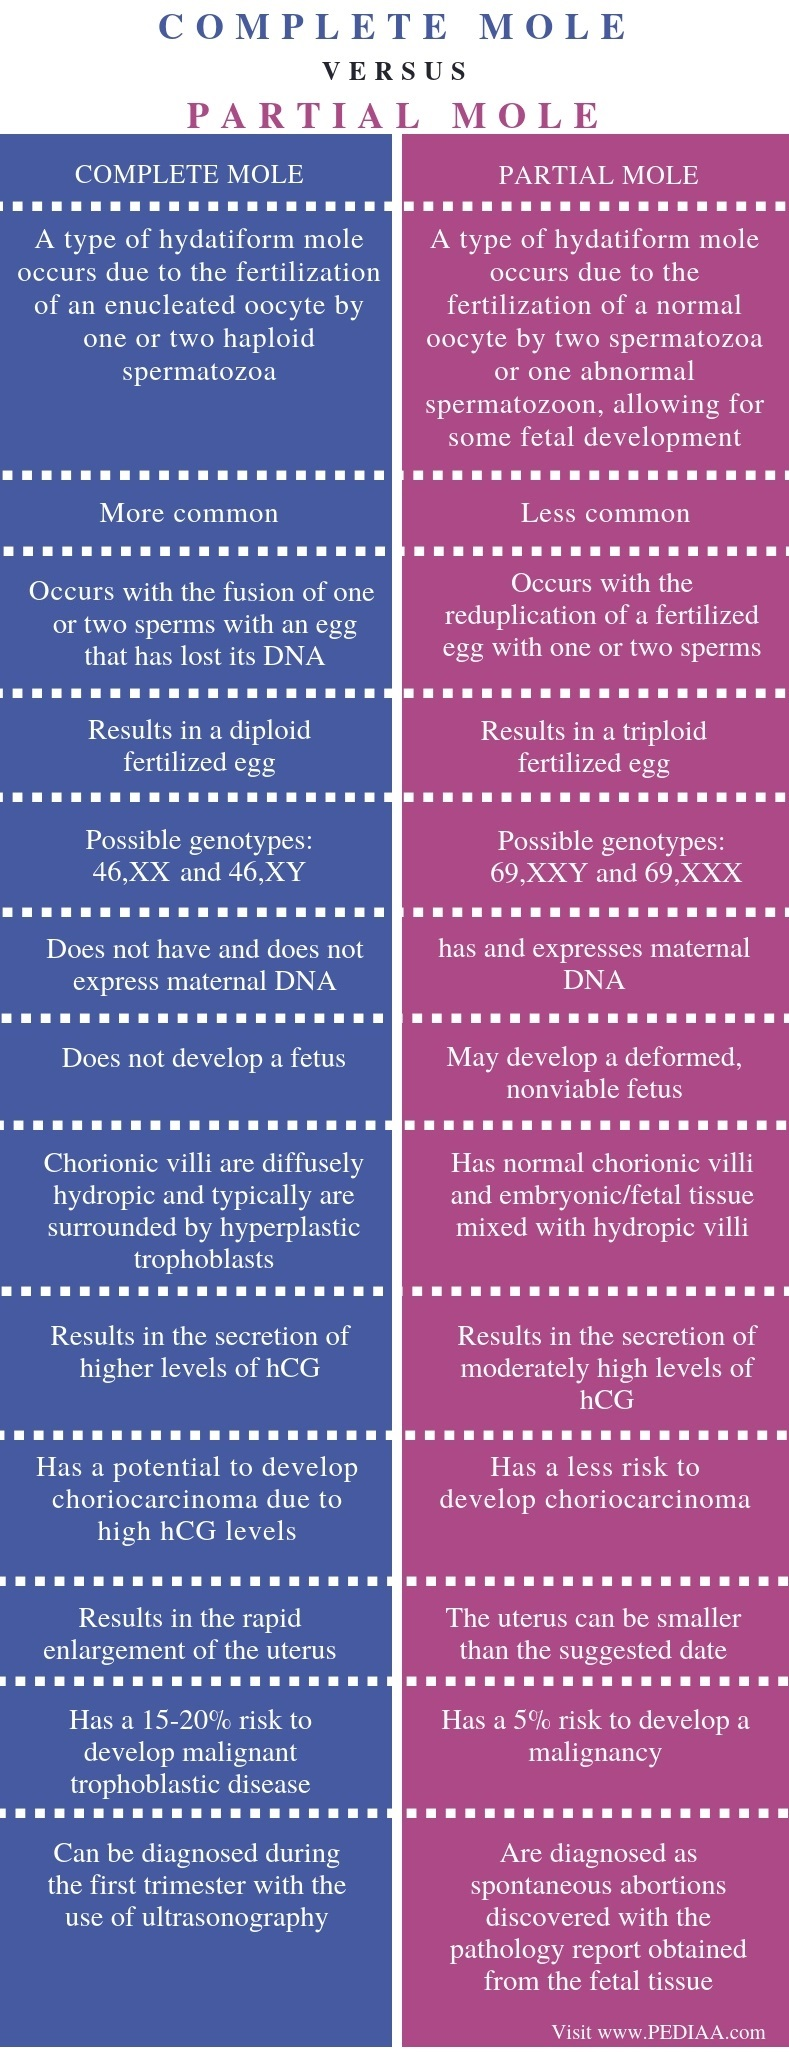 Difference Between Complete and Partial Mole - Comparison Summary